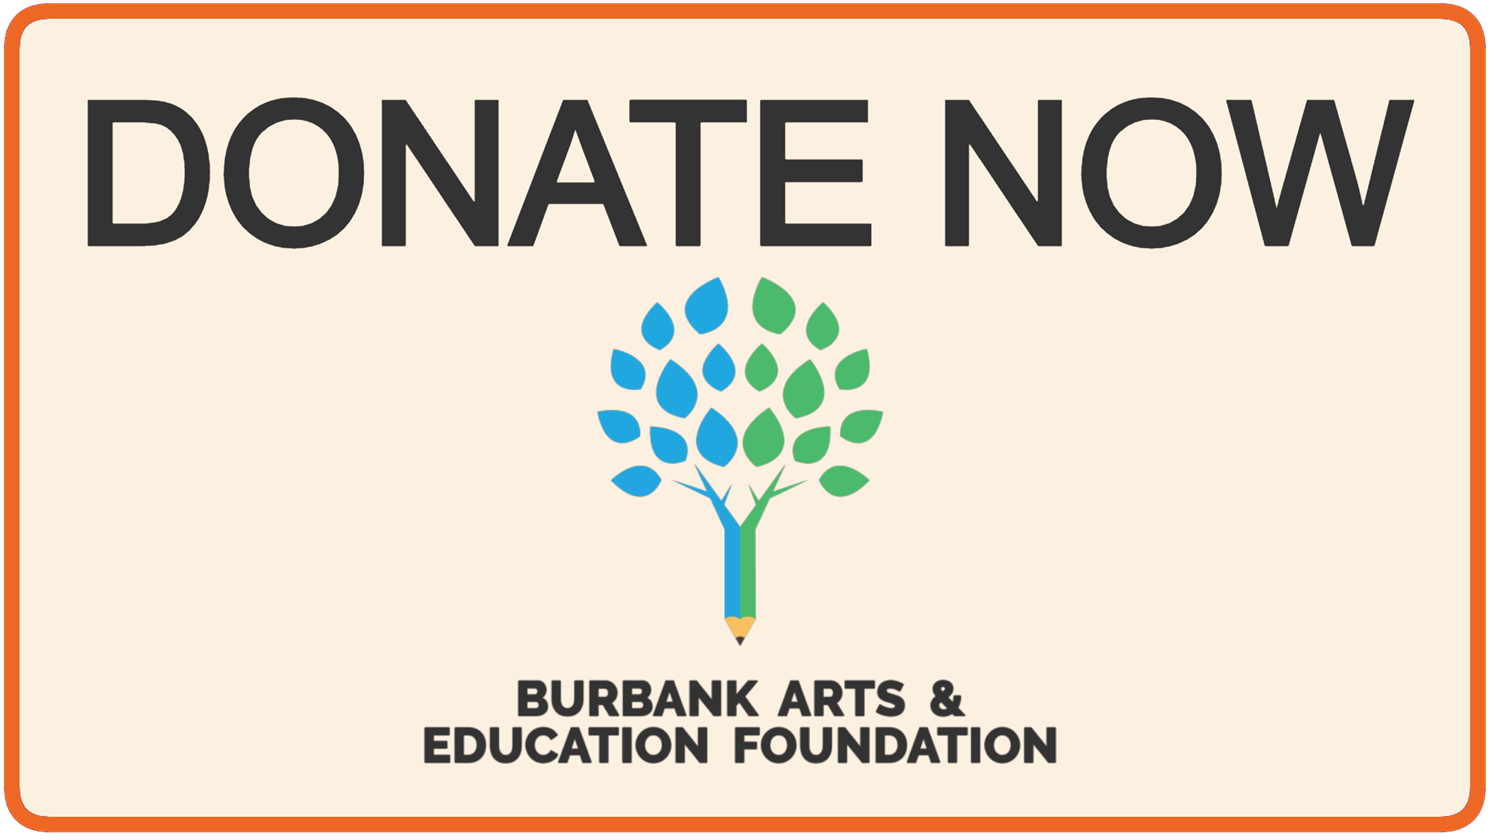 Burbank Educational Foundation And Burbank Arts For All Foundation Merge